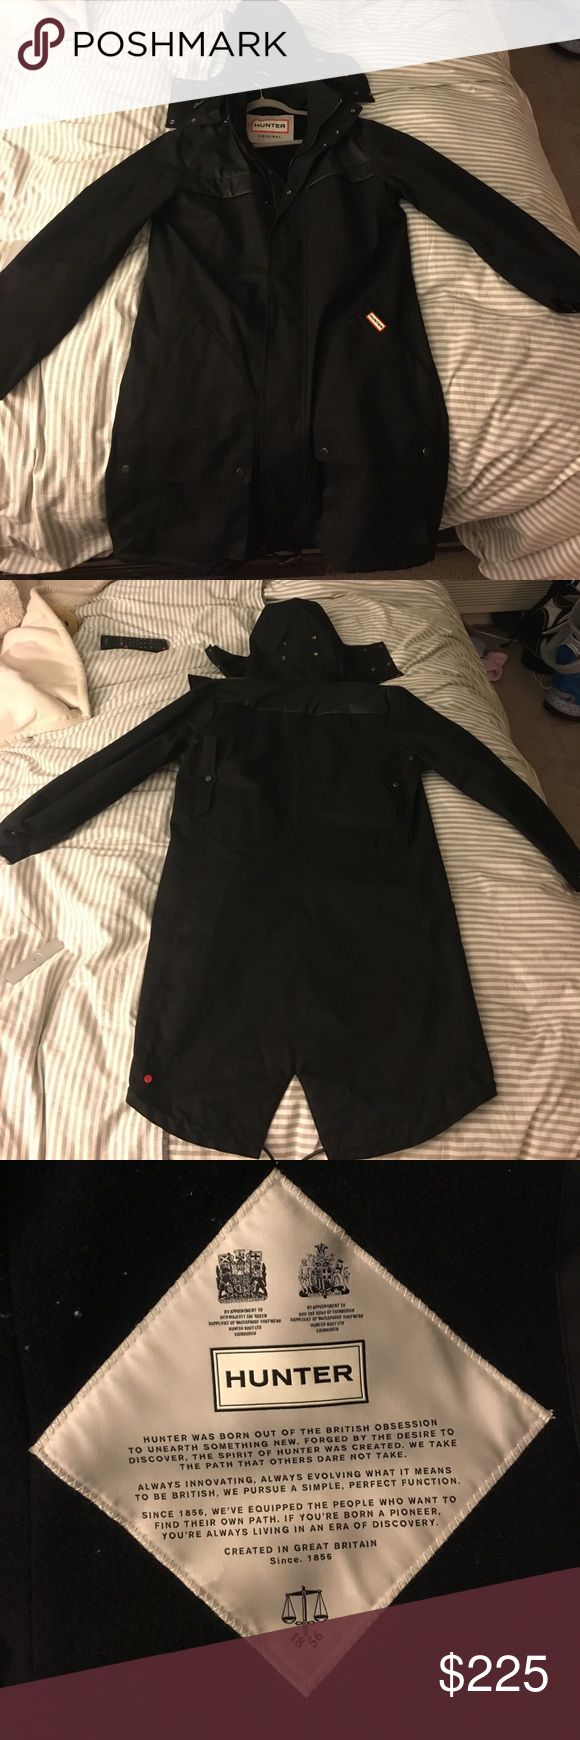 Men's Hunter Rain/Snow Jacket Men's Hunter Rain/Light snow Jacket. Worn once - in fantastic condition! Runs big. No trades or PayPal. Offers accepted :) Hunter Jackets & Coats Raincoats